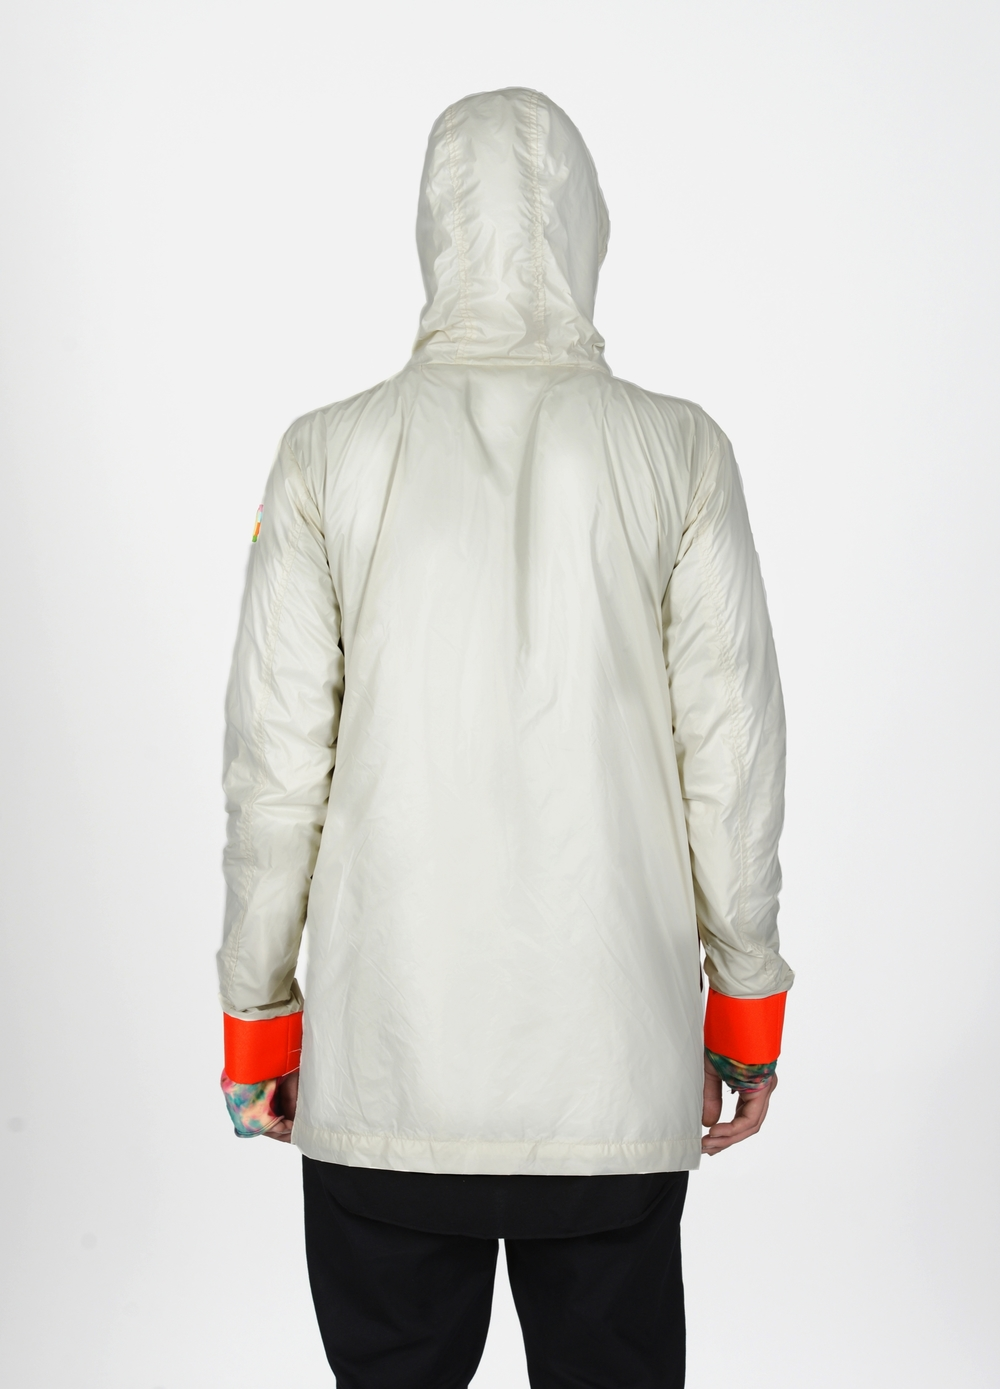 07 Heightened Sense Hoodie Orange Pocket.jpg